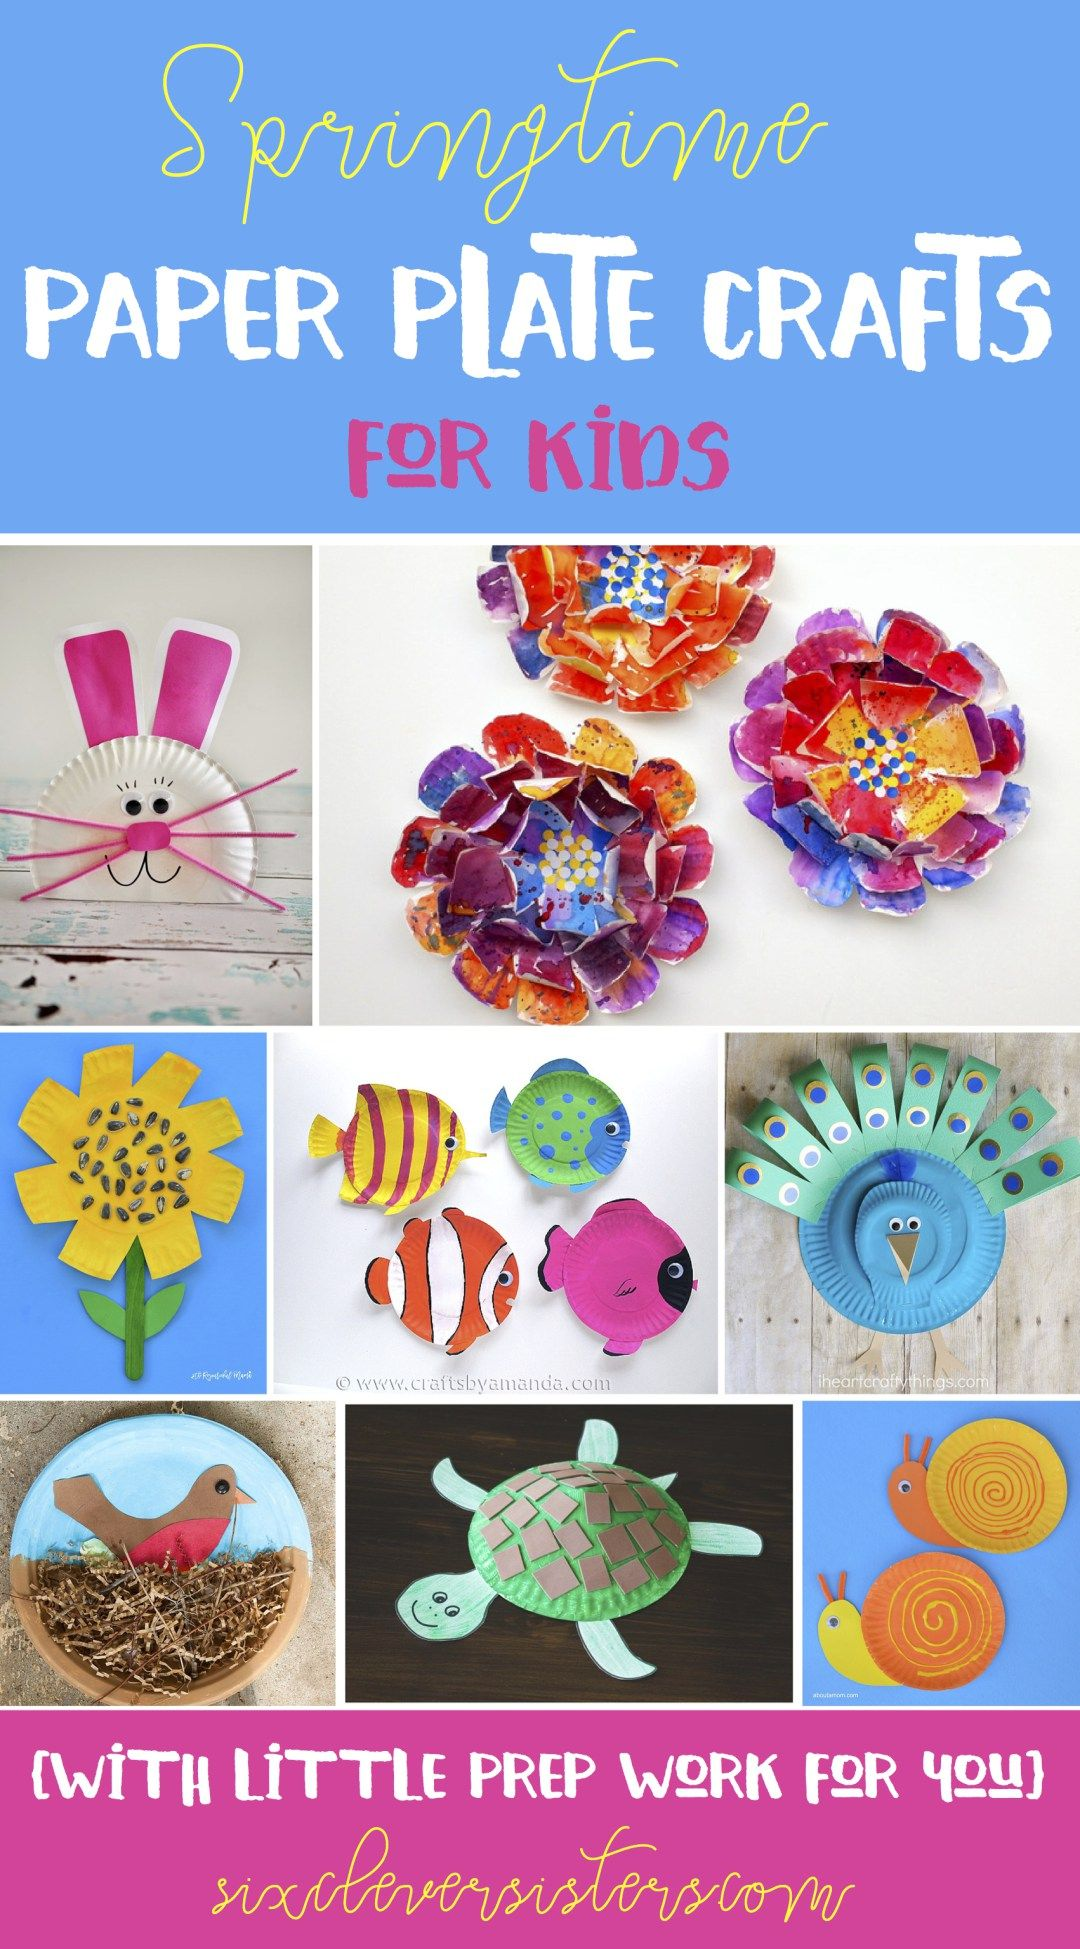 Paper Plate Crafts | Crafts for Kids | Easy Craft Ideas for Kids | Crafts Made  sc 1 st  Pinterest & Paper Plate Crafts | Crafts for Kids | Easy Craft Ideas for Kids ...